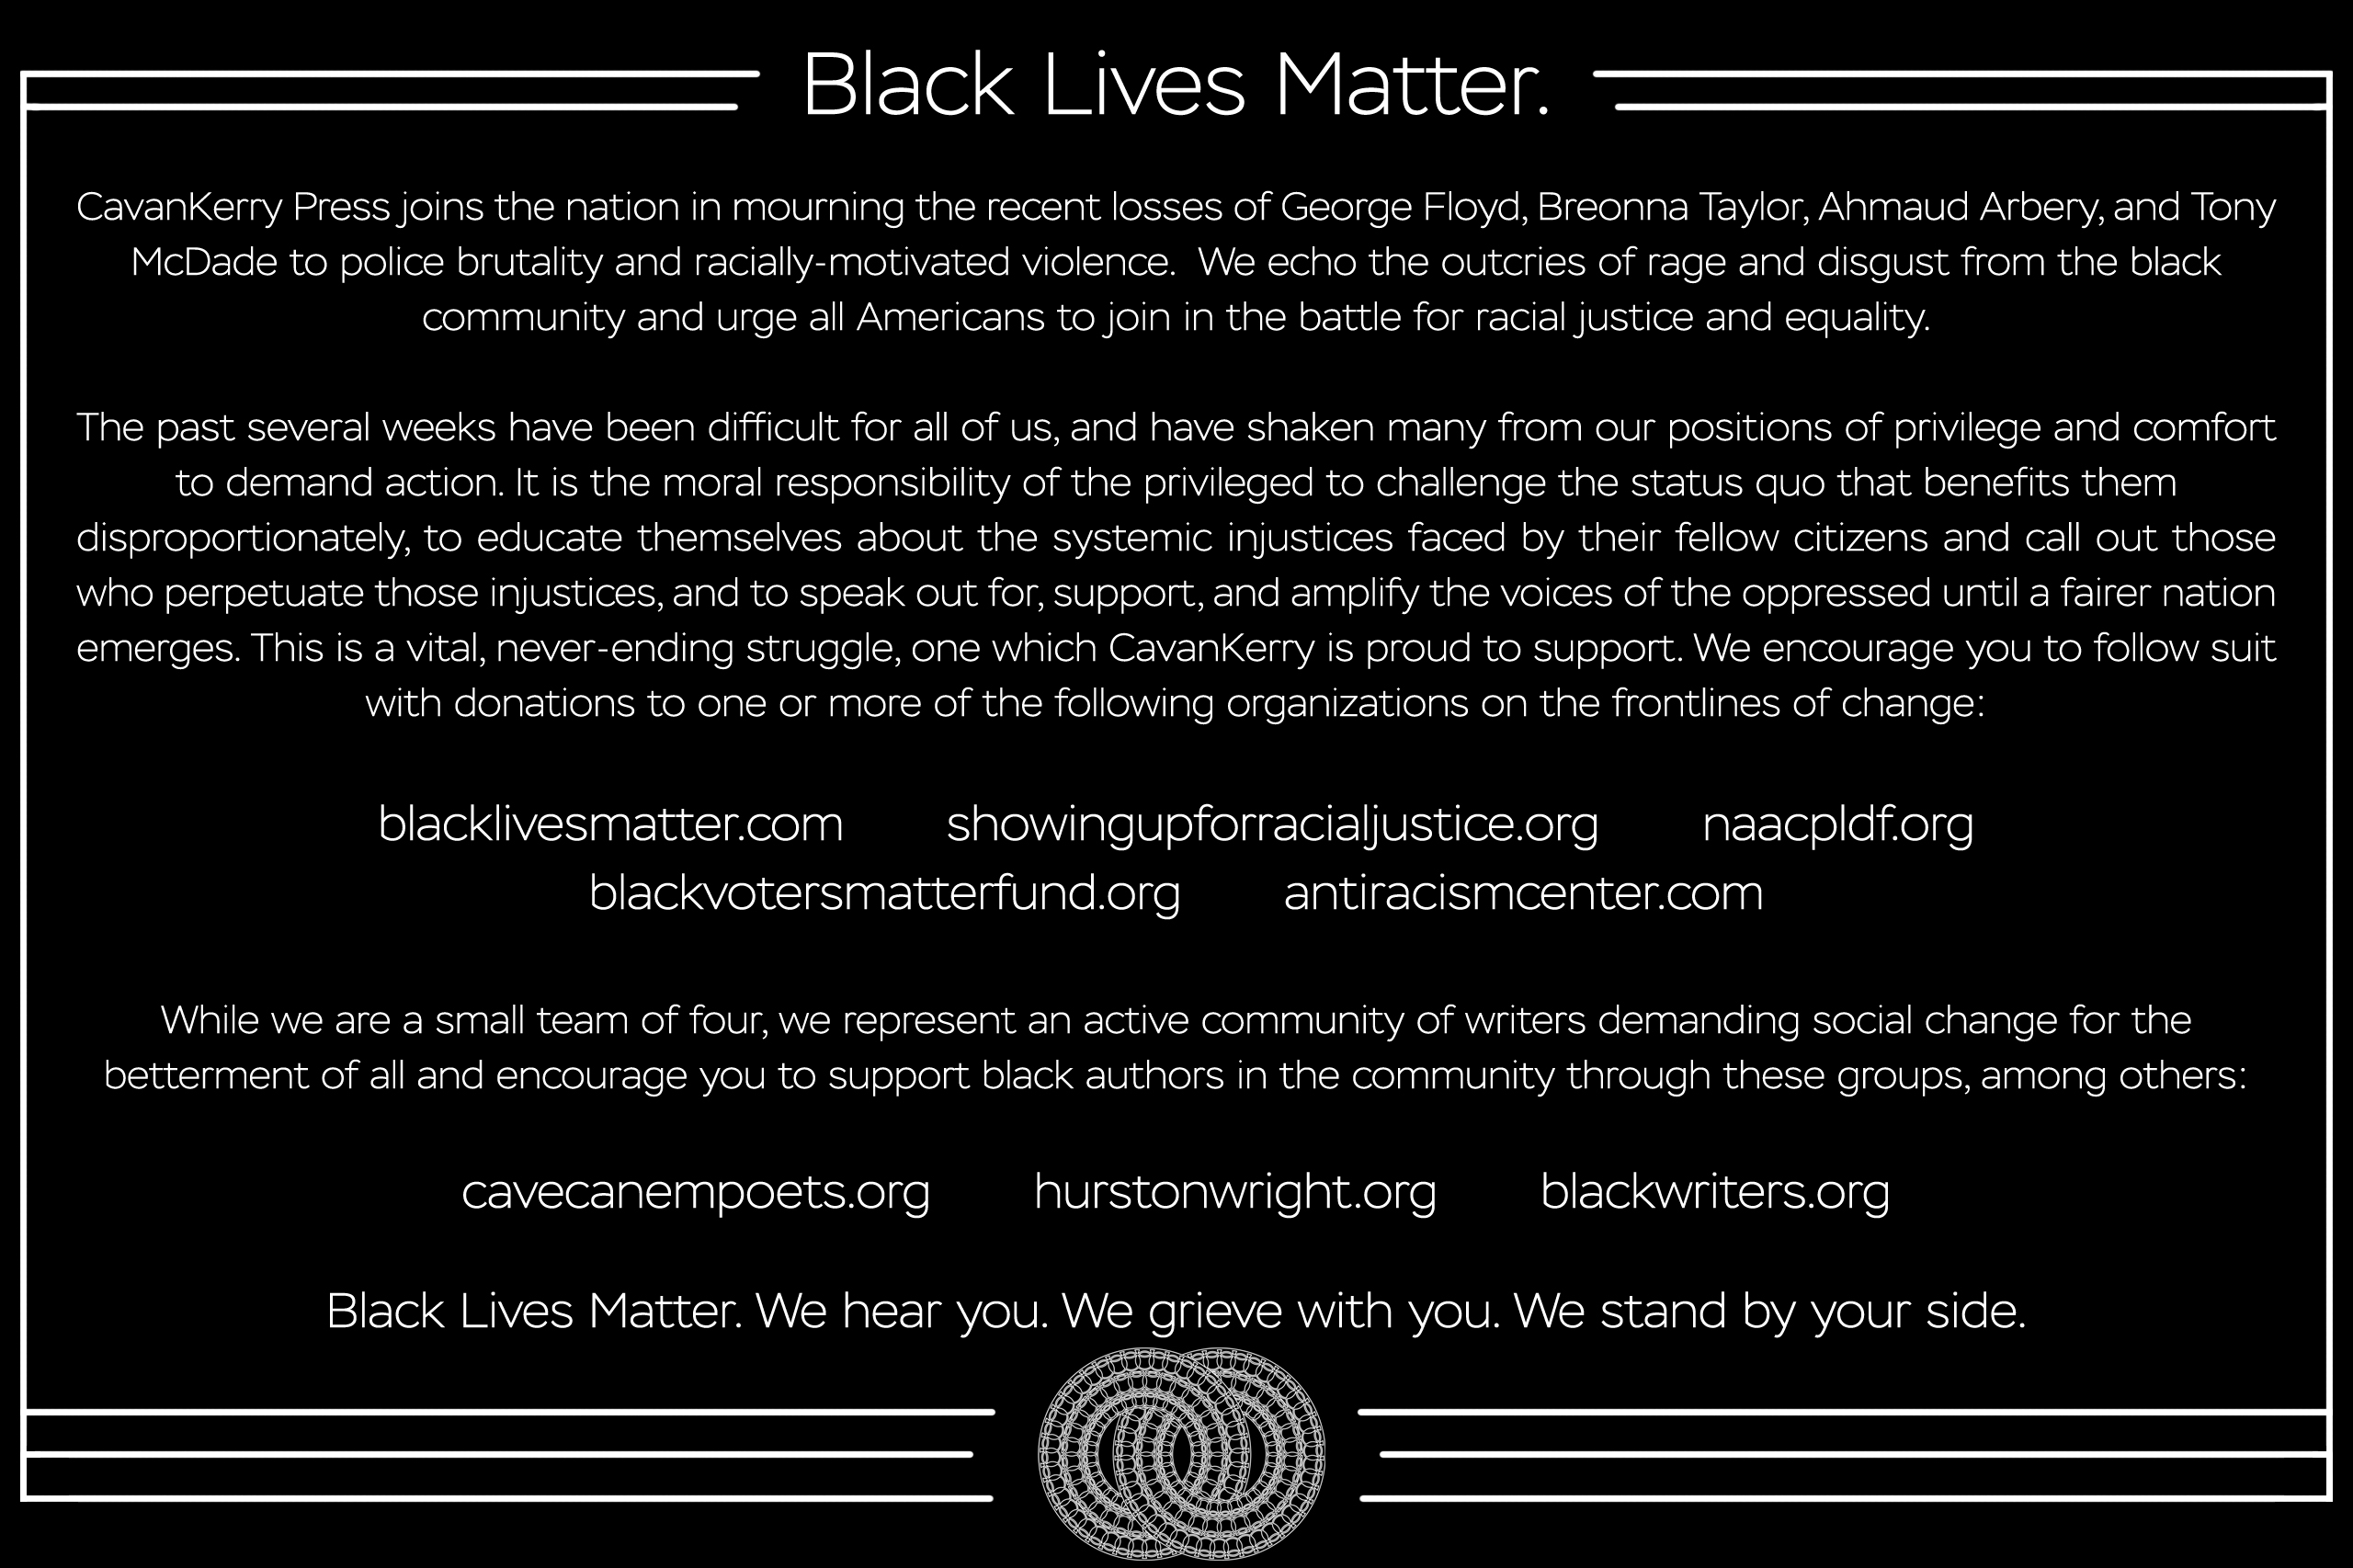 Black Lives Matter. CavanKerry Press joins the nation in mourning the recent losses of George Floyd, Breonna Taylor, Ahmaud Arbery, and Tony McDade to police brutality and racially-motivated violence. We echo the outcries of rage and disgust from the black community and urge all Americans to join in the battle for racial justice and equality. The past several weeks have been difficult for all of us, and have shaken many from our positions of privilege and comfort to demand action. It is the moral responsibility of the privileged to challenge the status quo that benefits them disproportionately, to educate themselves about the systemic injustices faced by their fellow citizens and call out those who perpetuate those injustices, and to speak out for, support, and amplify the voices of the oppressed until a fairer nation emerges. This is a vital, never-ending struggle, one which CavanKerry is proud to support. We encourage you to follow suit with donations to one or more of the following organizations on the frontlines of change: blacklivesmatter.com showingupforracialjustice.org naacpldf.org blackvotersmatterfund.org antiracismcenter.com While we are a small team of four, we represent an active community of writers demanding social change for the betterment of all and encourage you to support black authors in the community through these groups, among others: cavecanempoets.org hurstonwright.org blackwriters.org Black Lives Matter. We hear you. We grieve with you. We stand by your side.